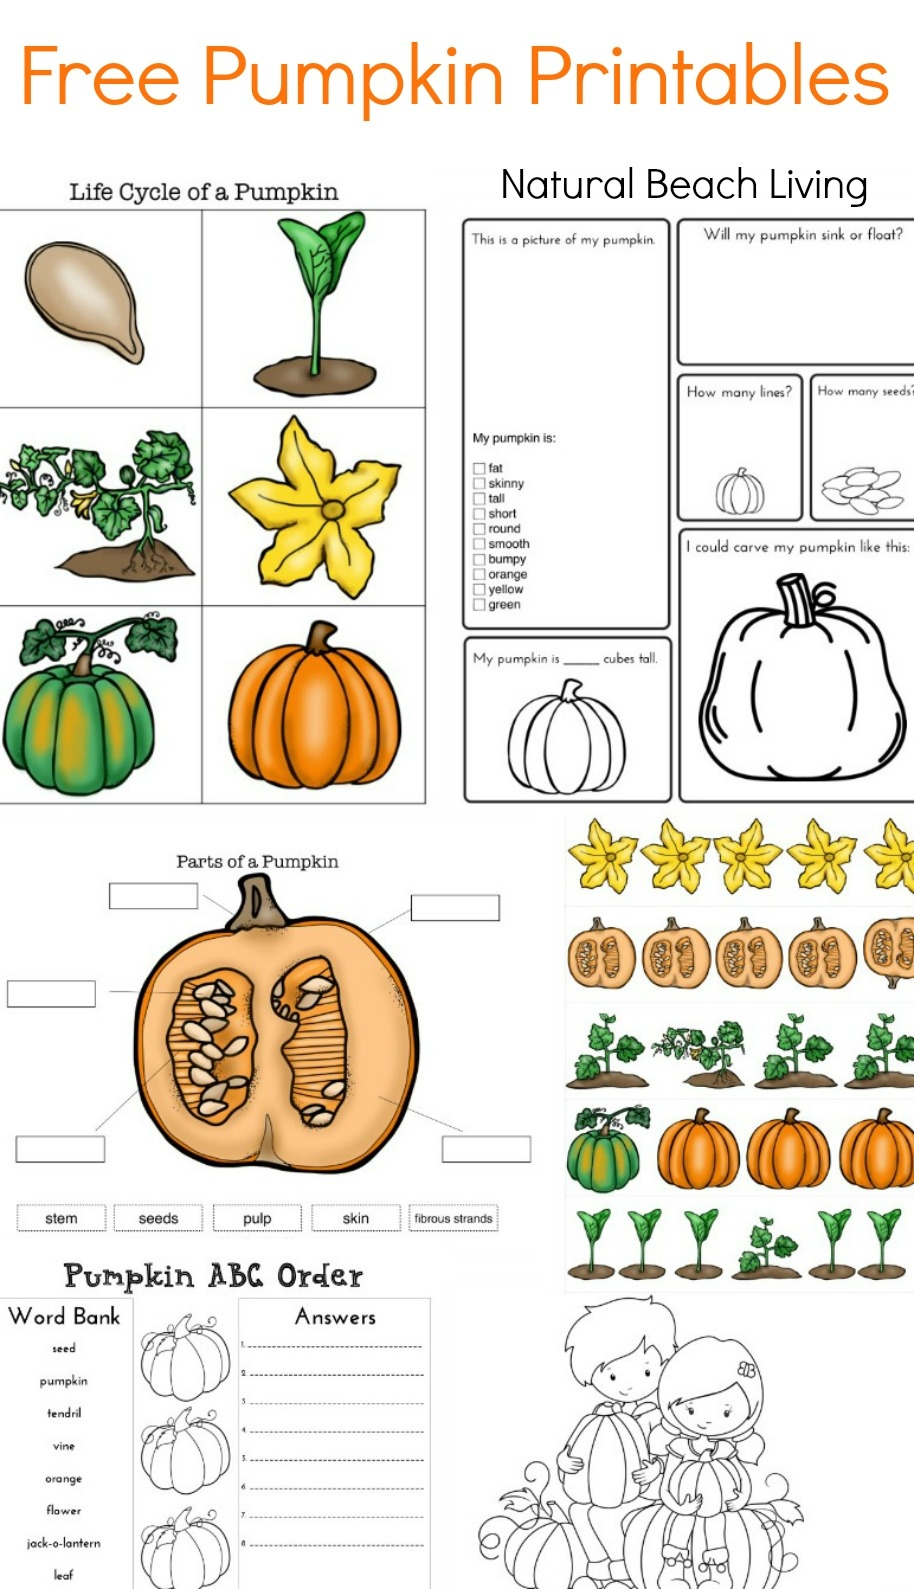 Pumpkin Activities For Kids - Pumpkin Theme Lesson Plan (Stem - Free Pumpkin Printables